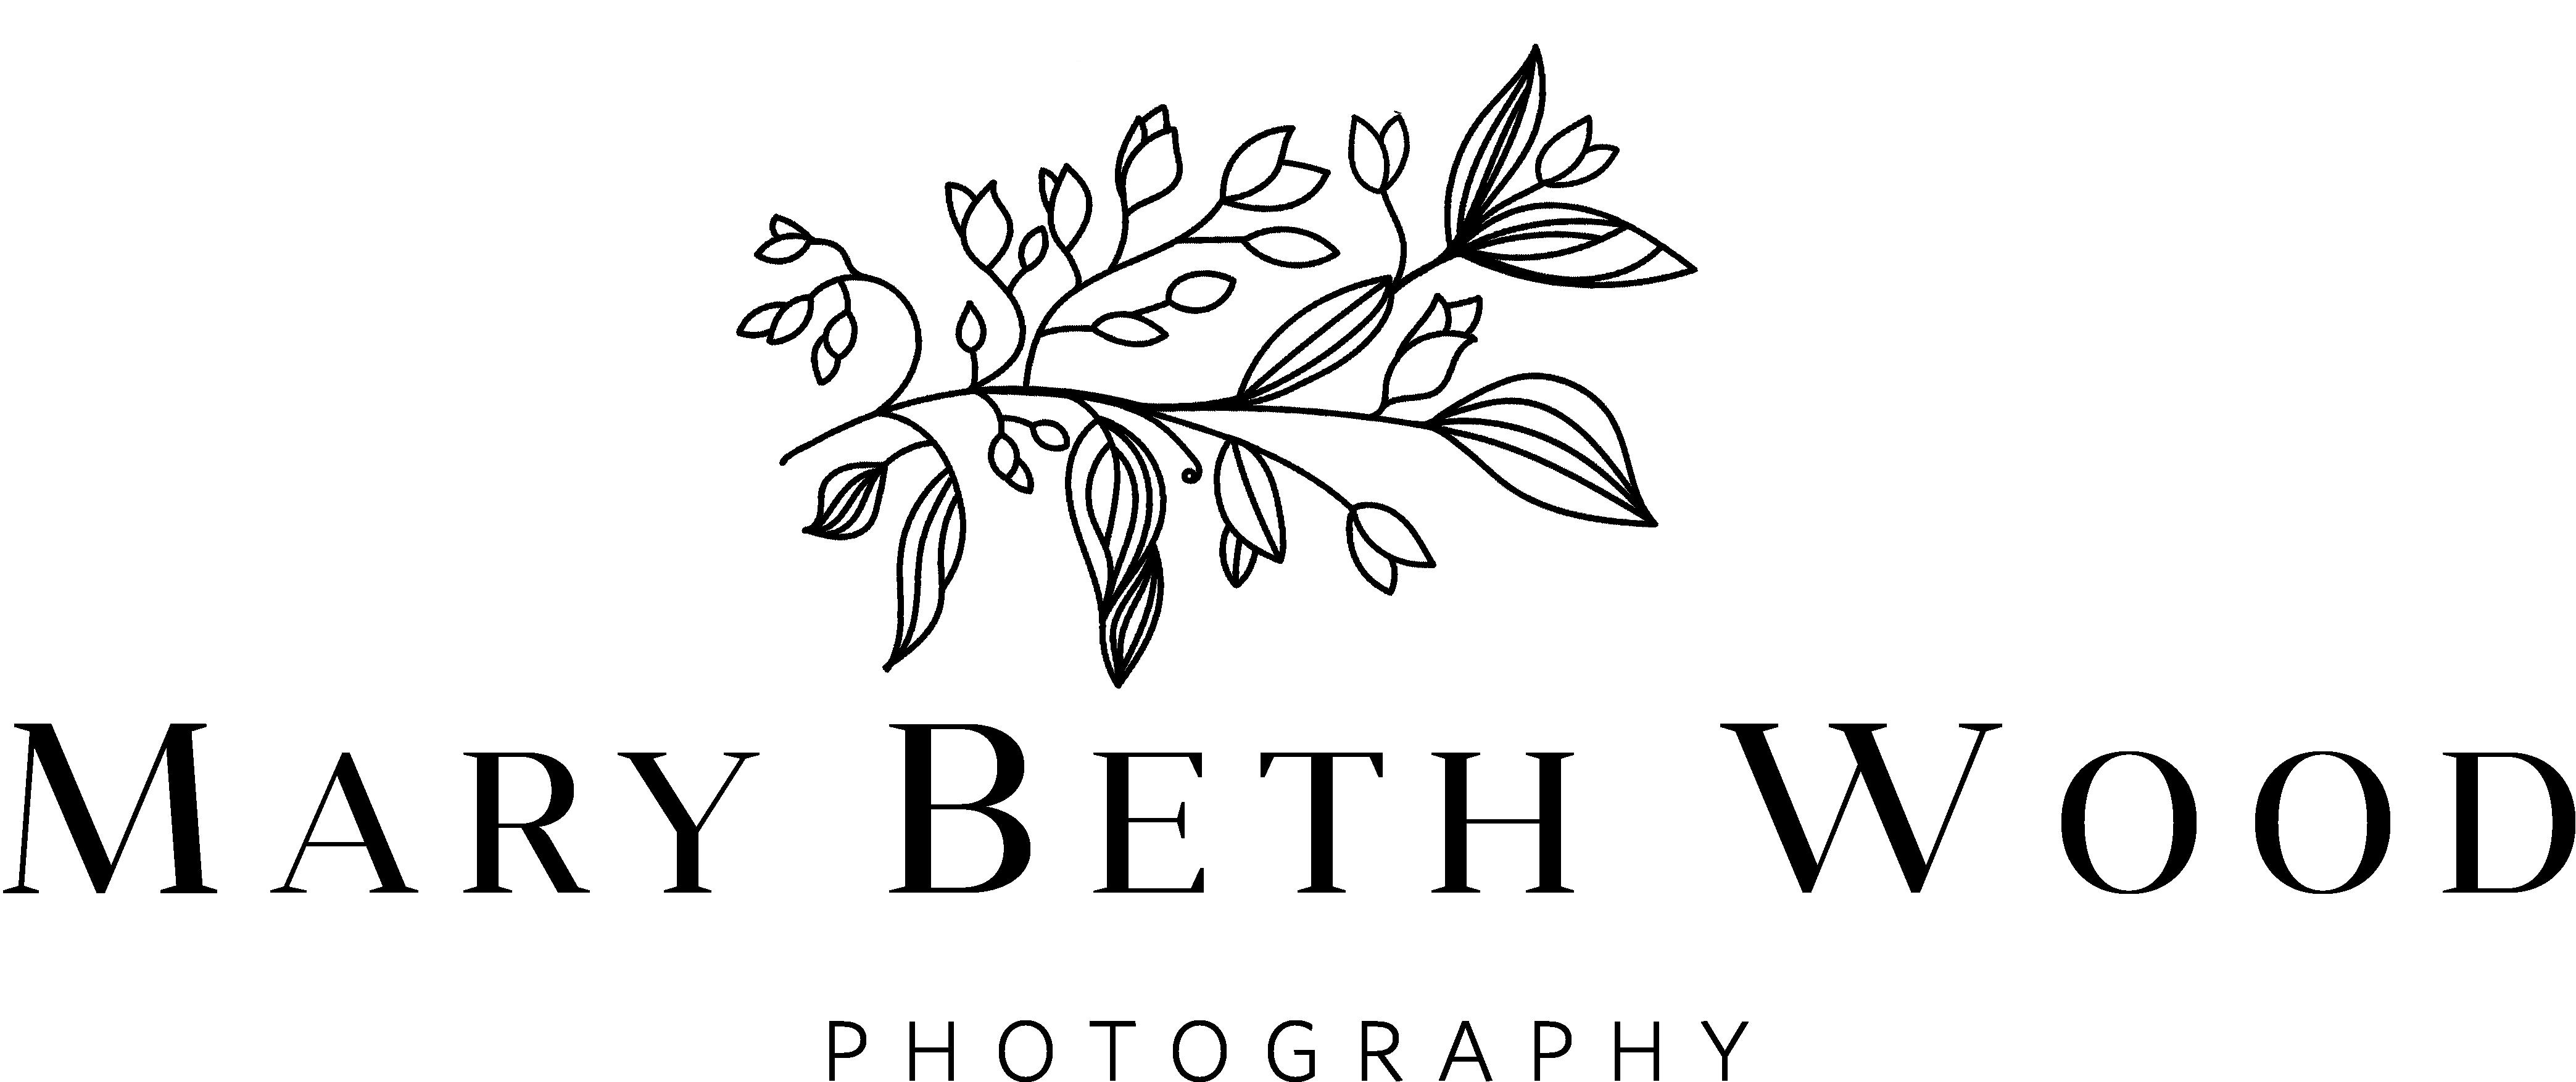 Mary Beth Wood Photography